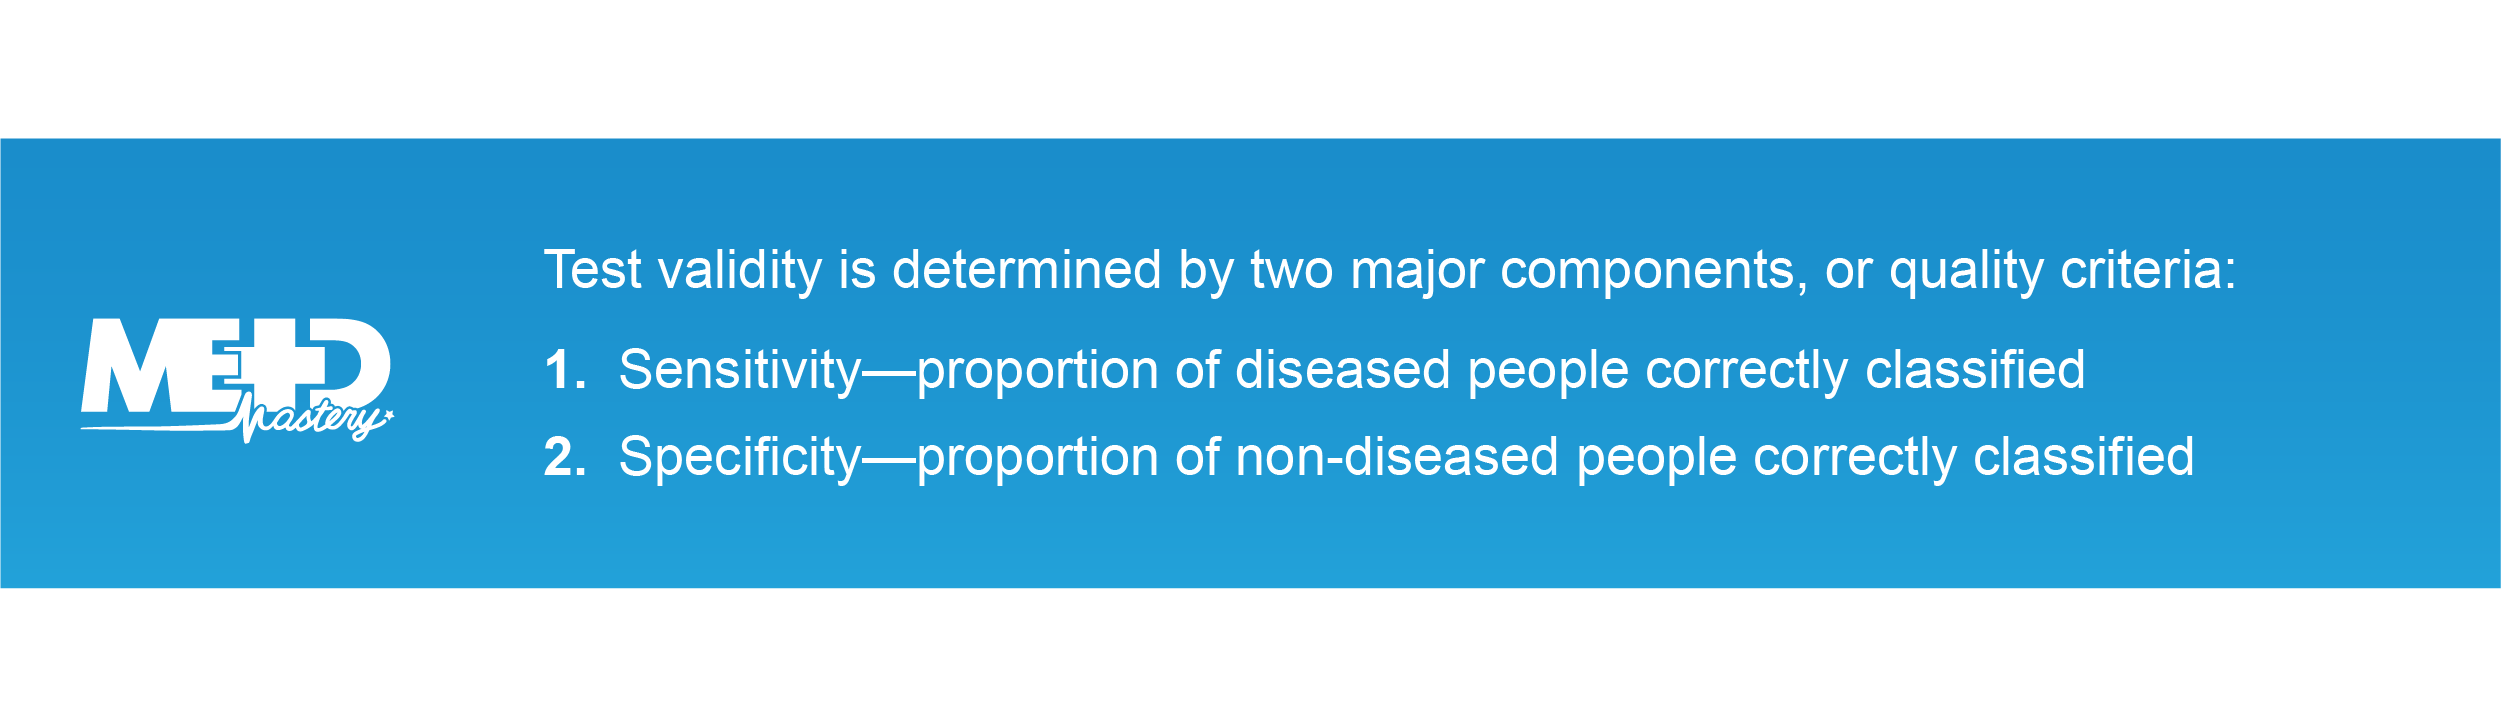 Test validity has two major components, or quality criteria: 1.Sensitivity—proportion of diseased people correctly classified 2.Specificity—proportion of non-diseased people correctly classified